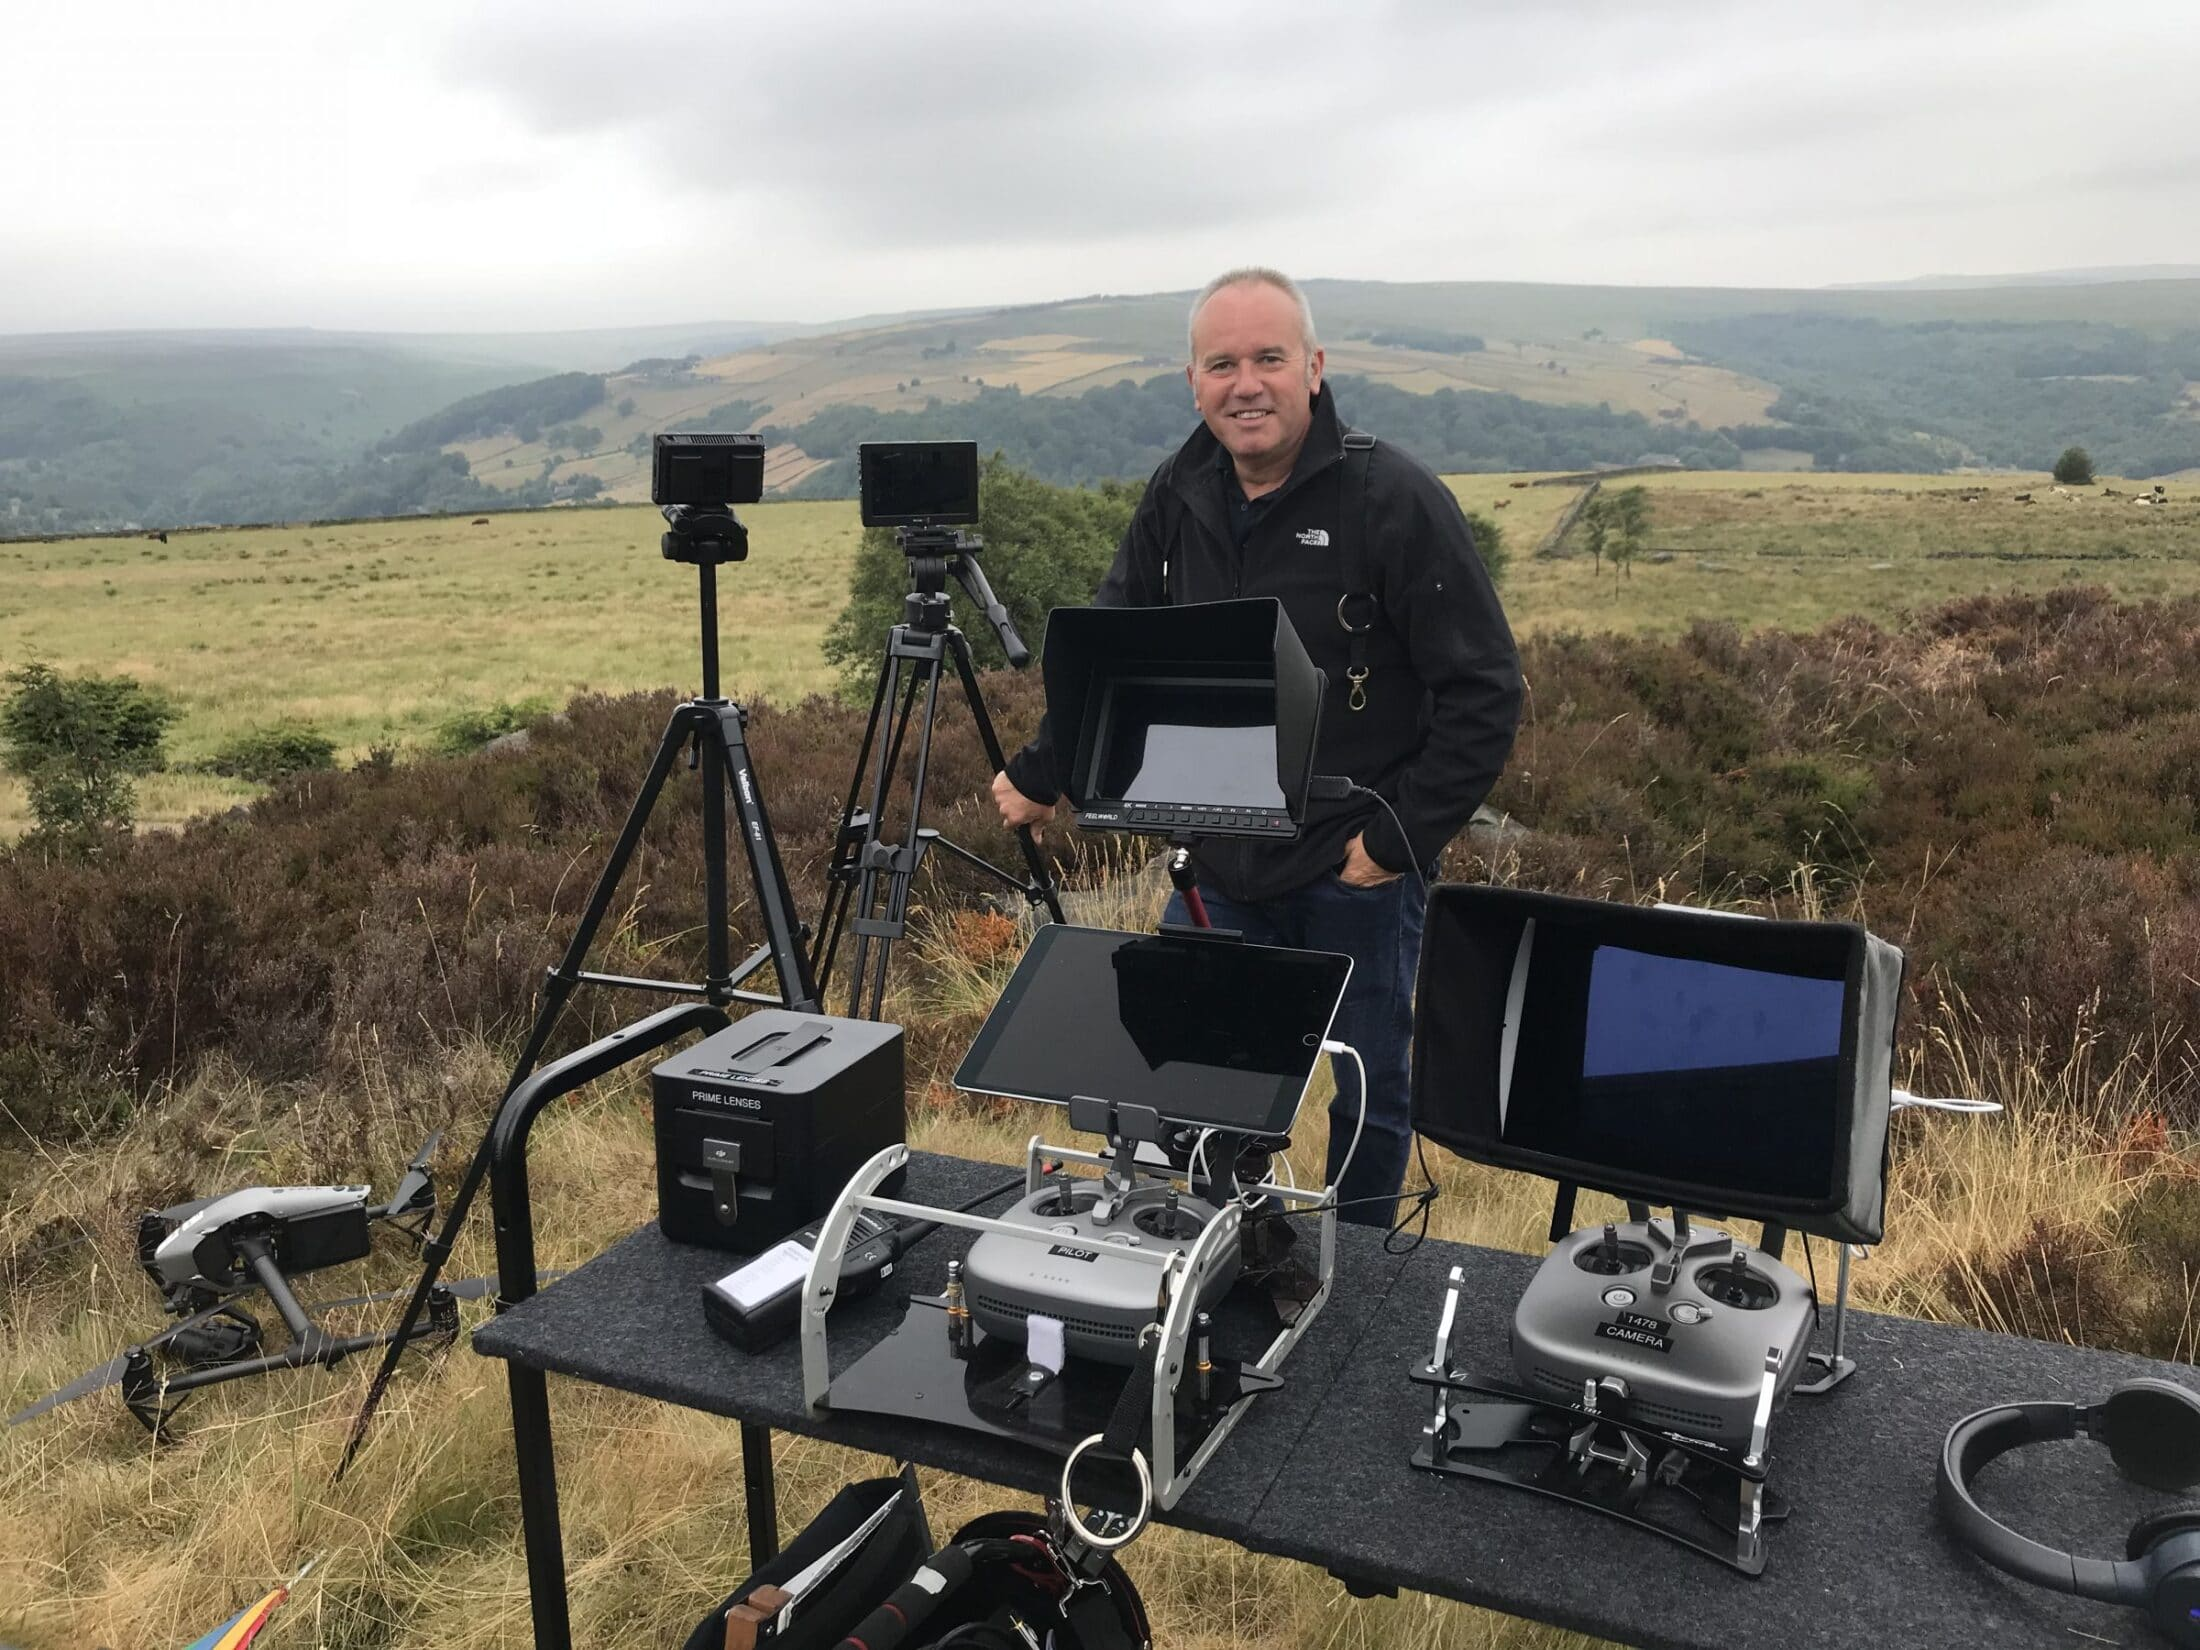 Darren Miller filming with Halo Vue, stood with Drone remote control. DJI Inspire 2 Aircraft , directors monitors in the country side